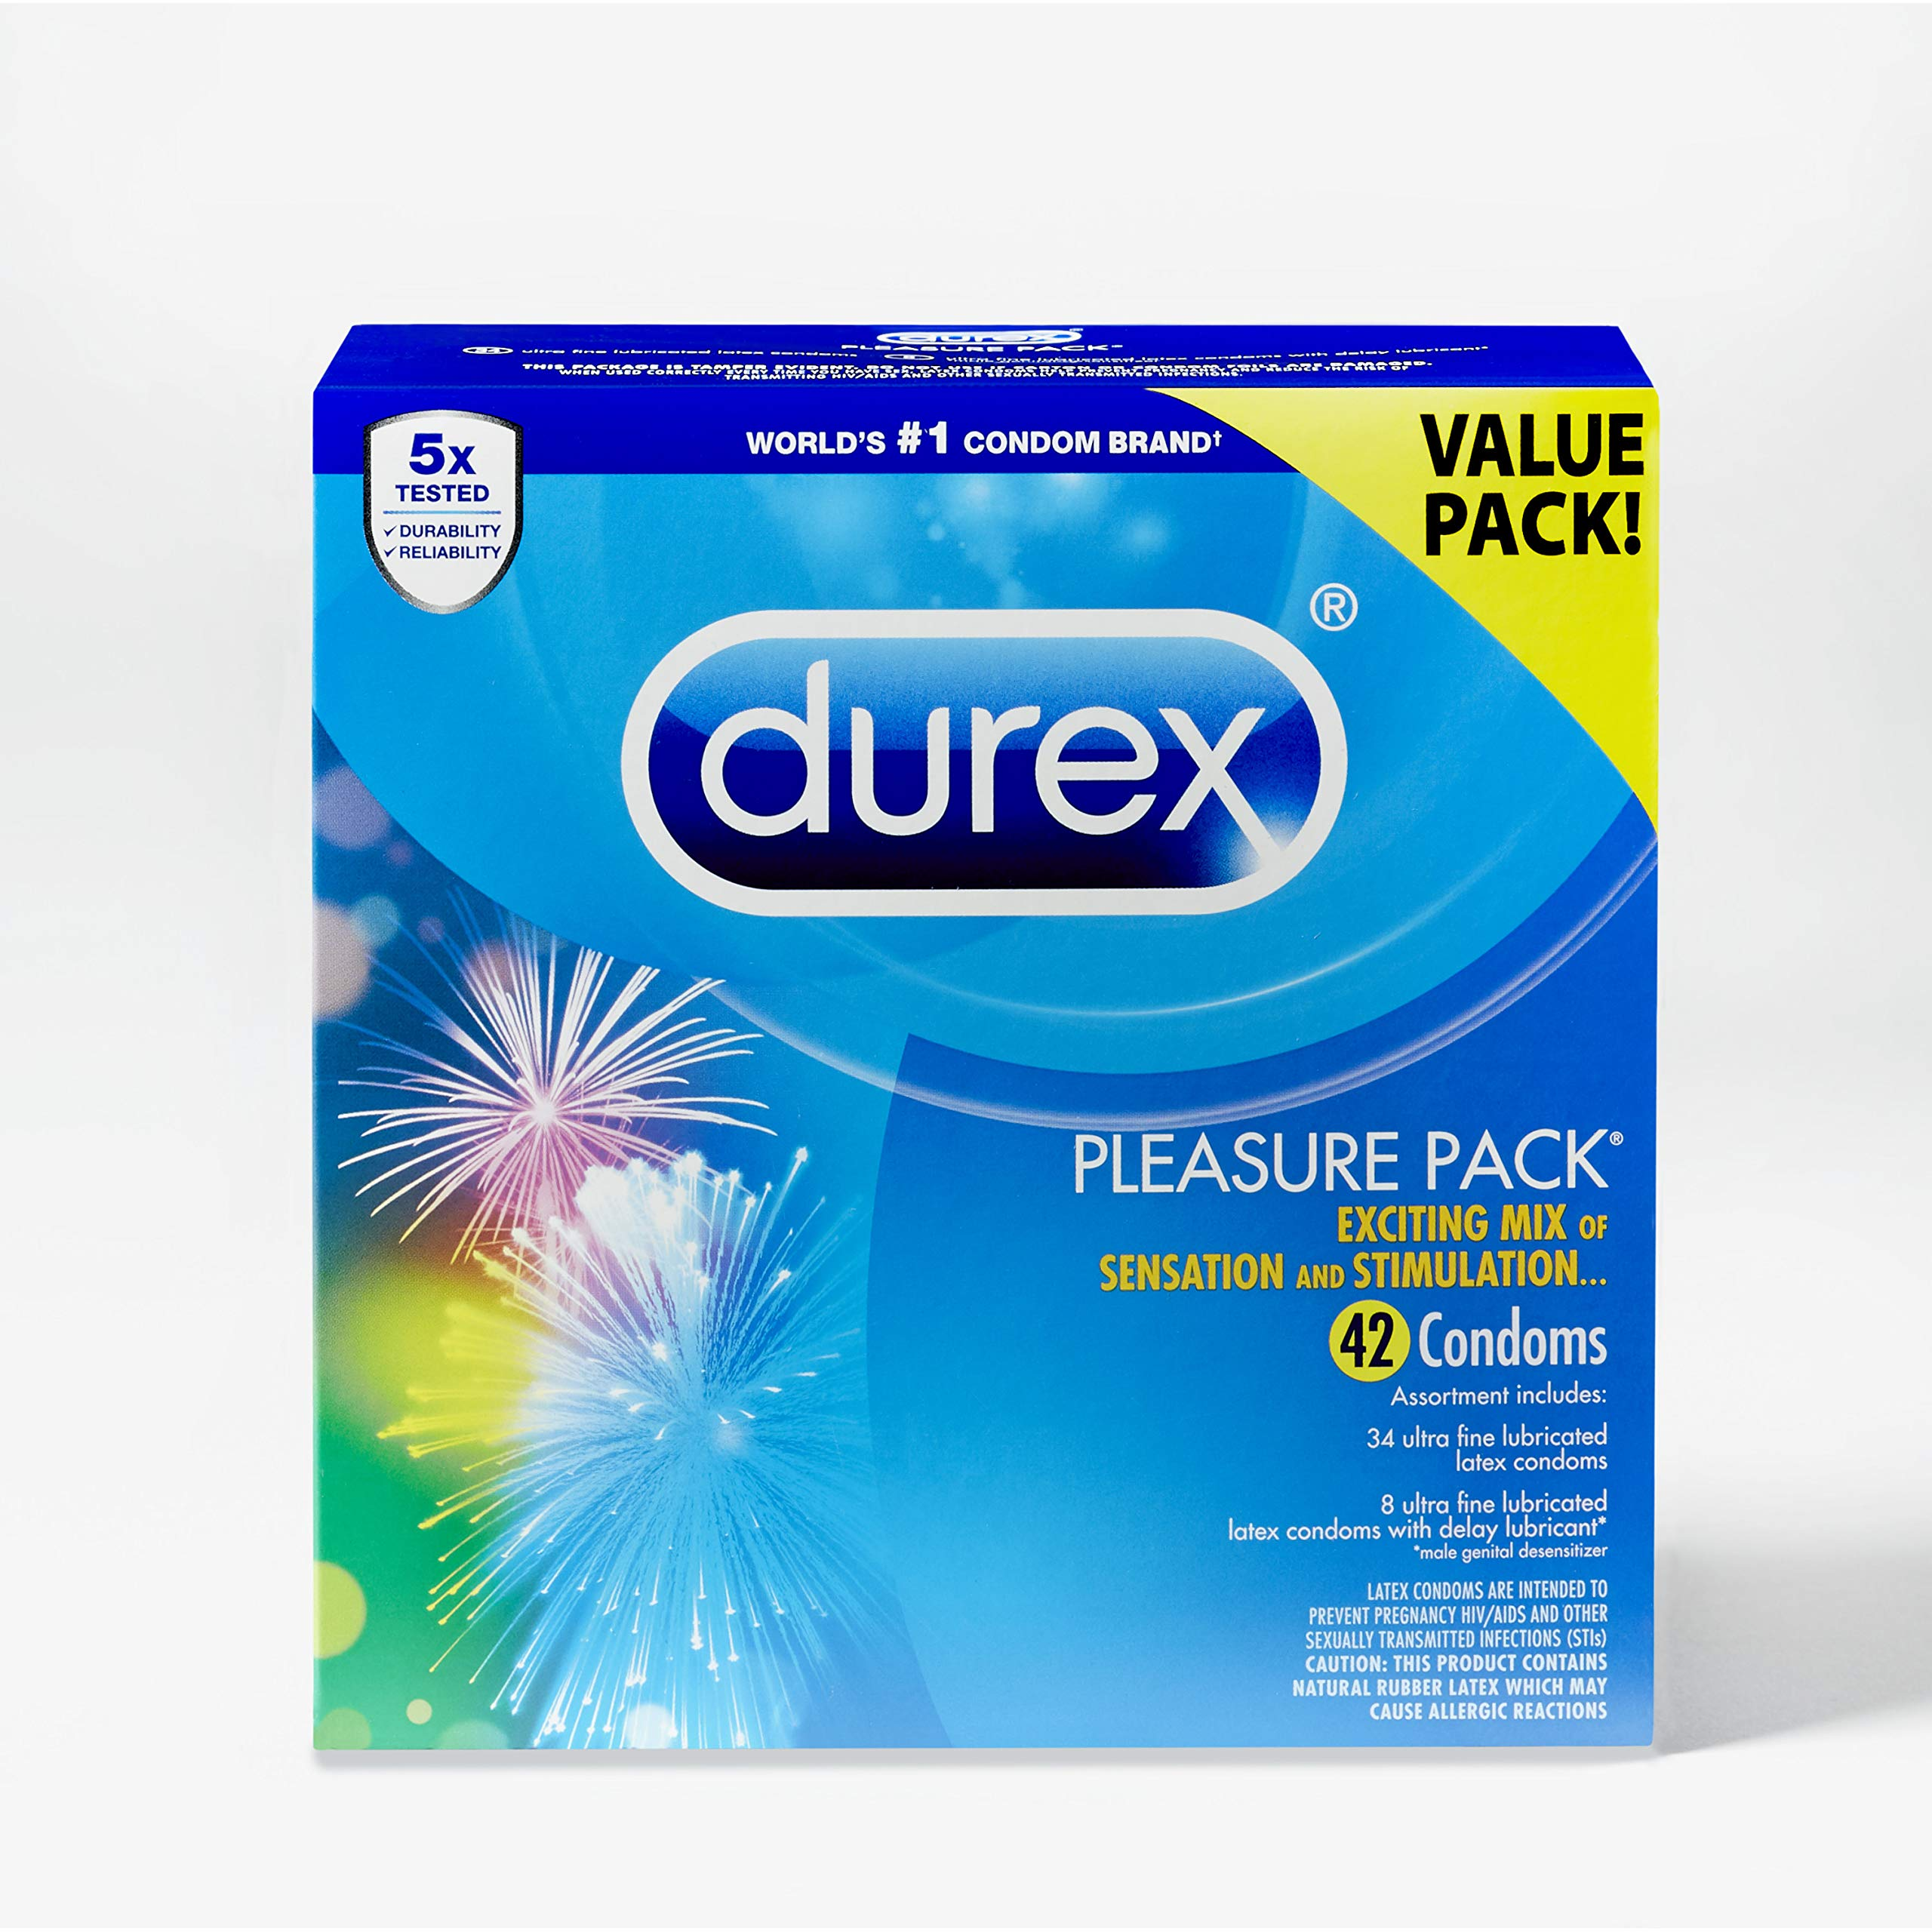 Condoms, Natural Rubber Latex Condoms, Durex Condom Pleasure Pack Assorted Condoms, 42 Count, an Exciting Mix of Sensation and Stimulation, FSA & HSA Eligible